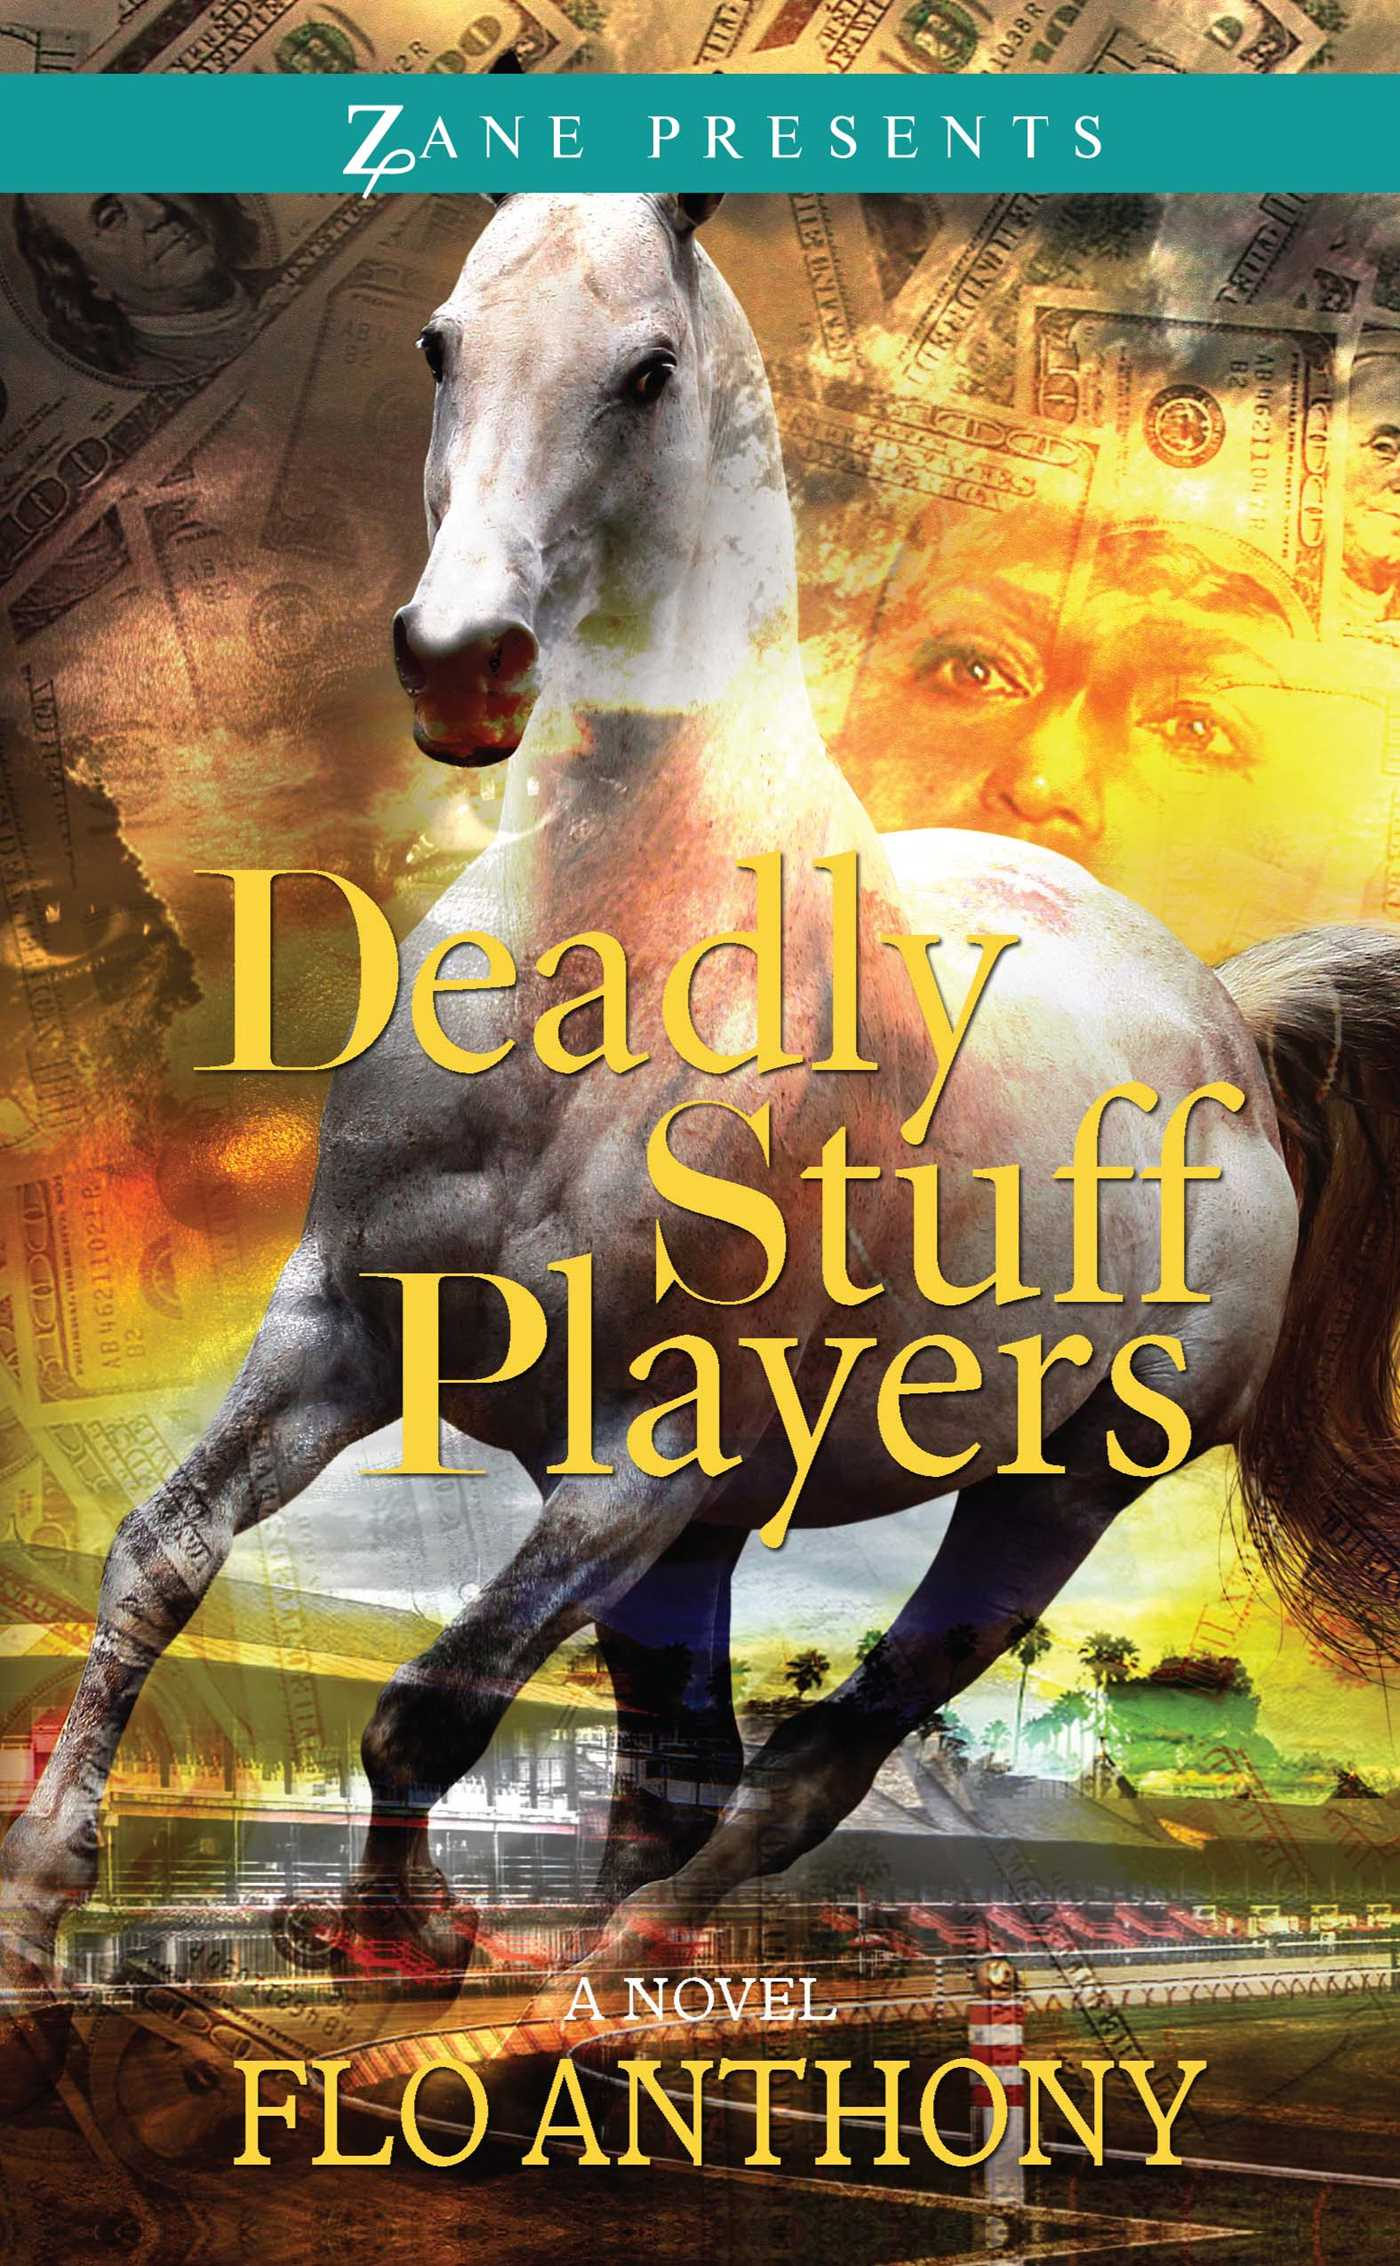 Deadly-stuff-players-9781593095079_hr